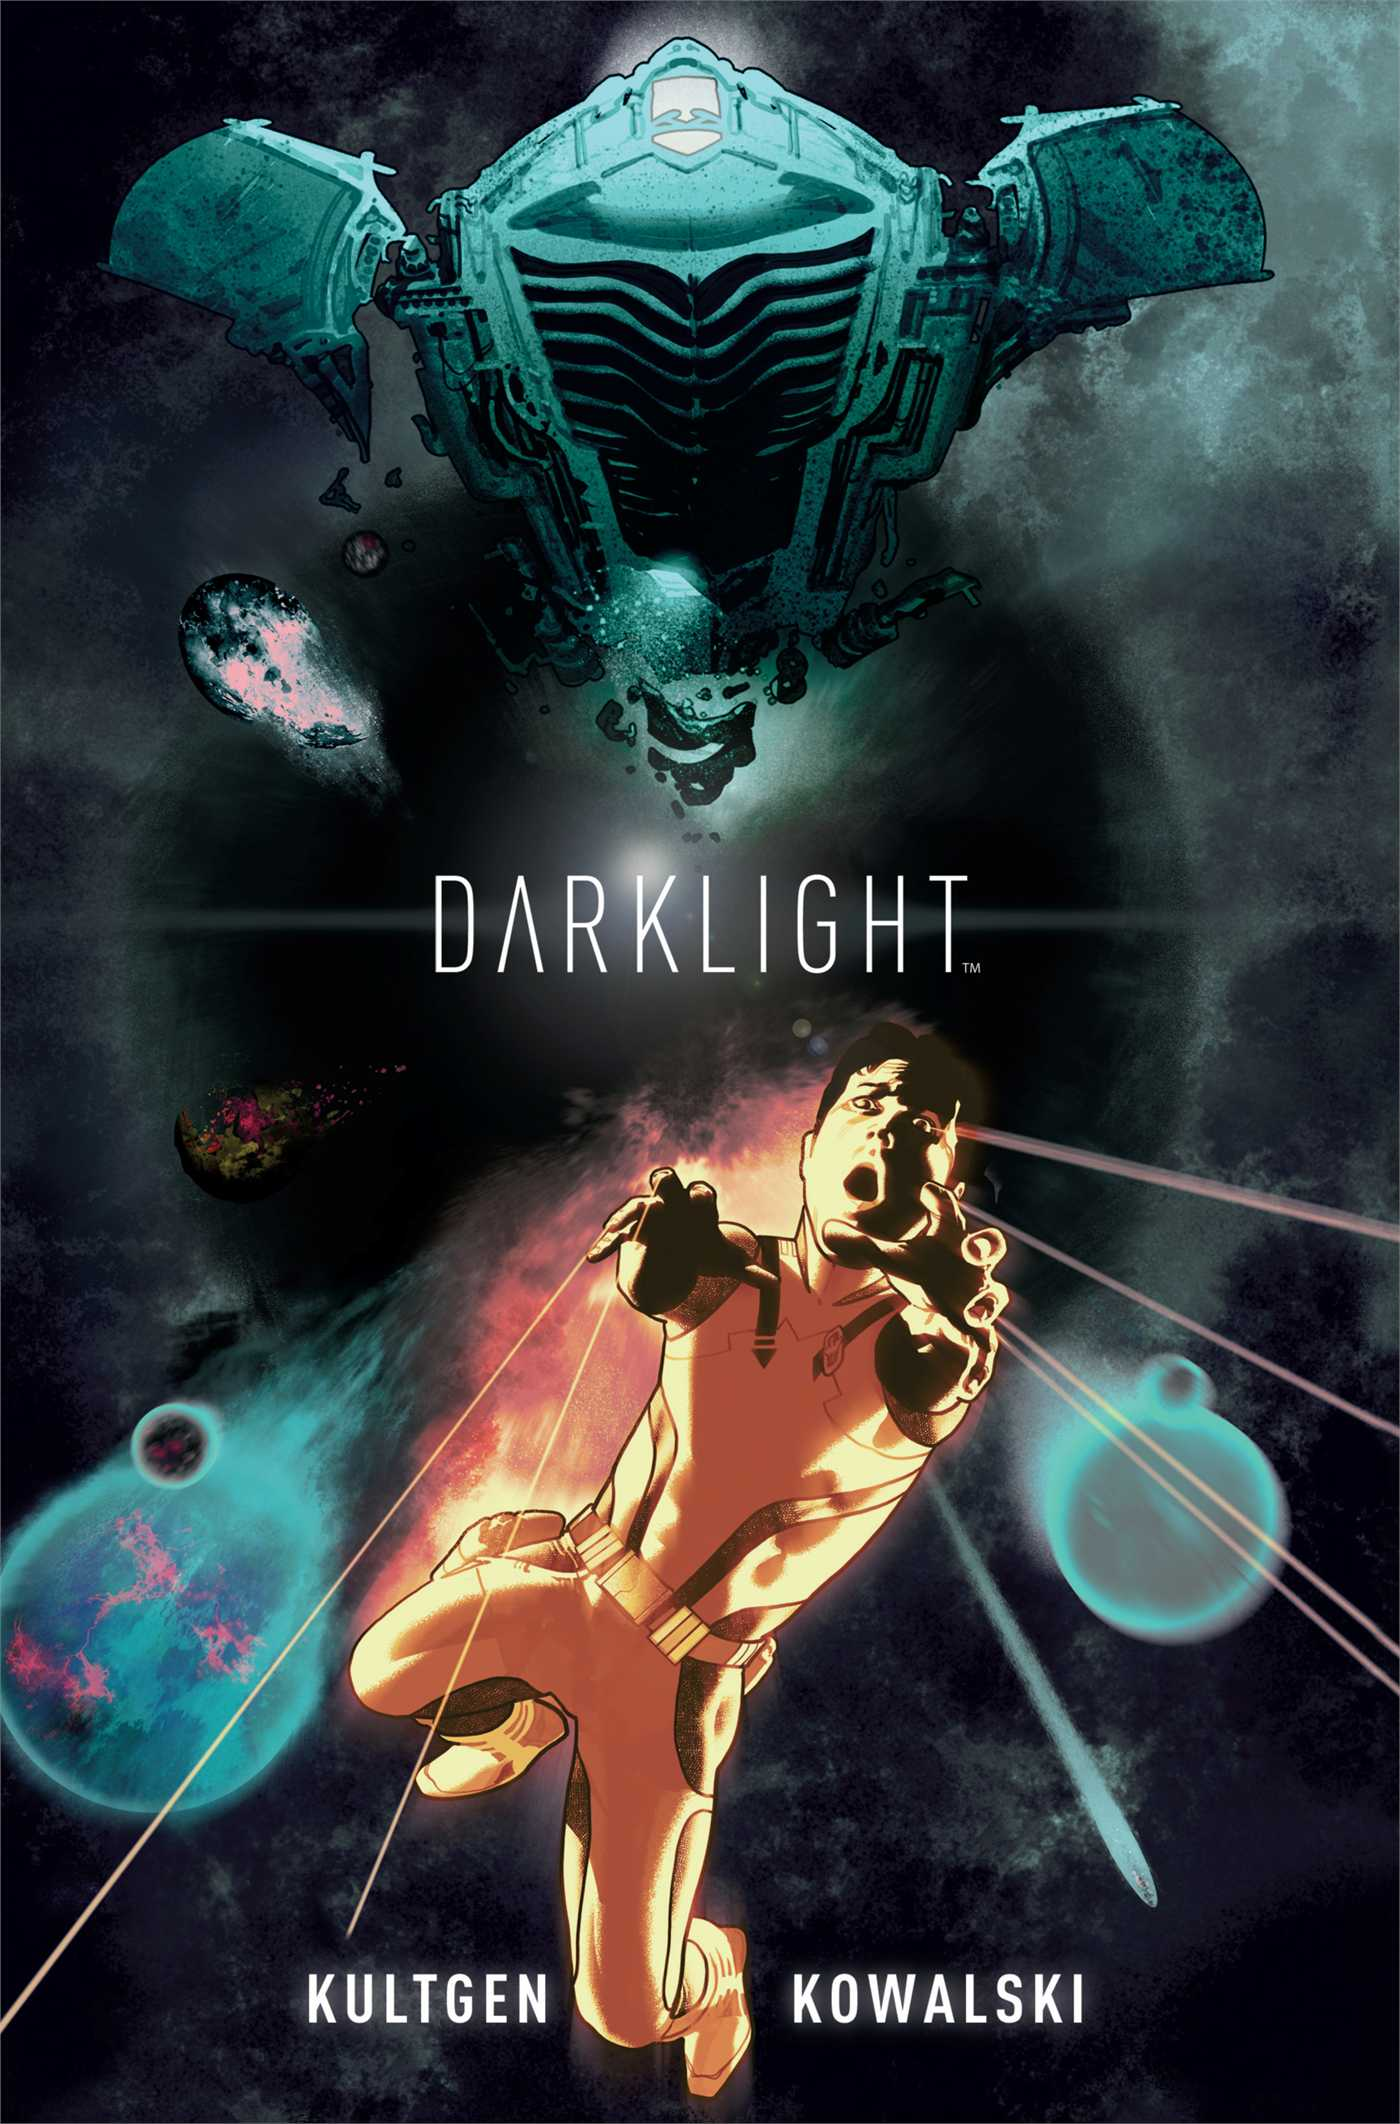 Darklight-9781608862948_hr